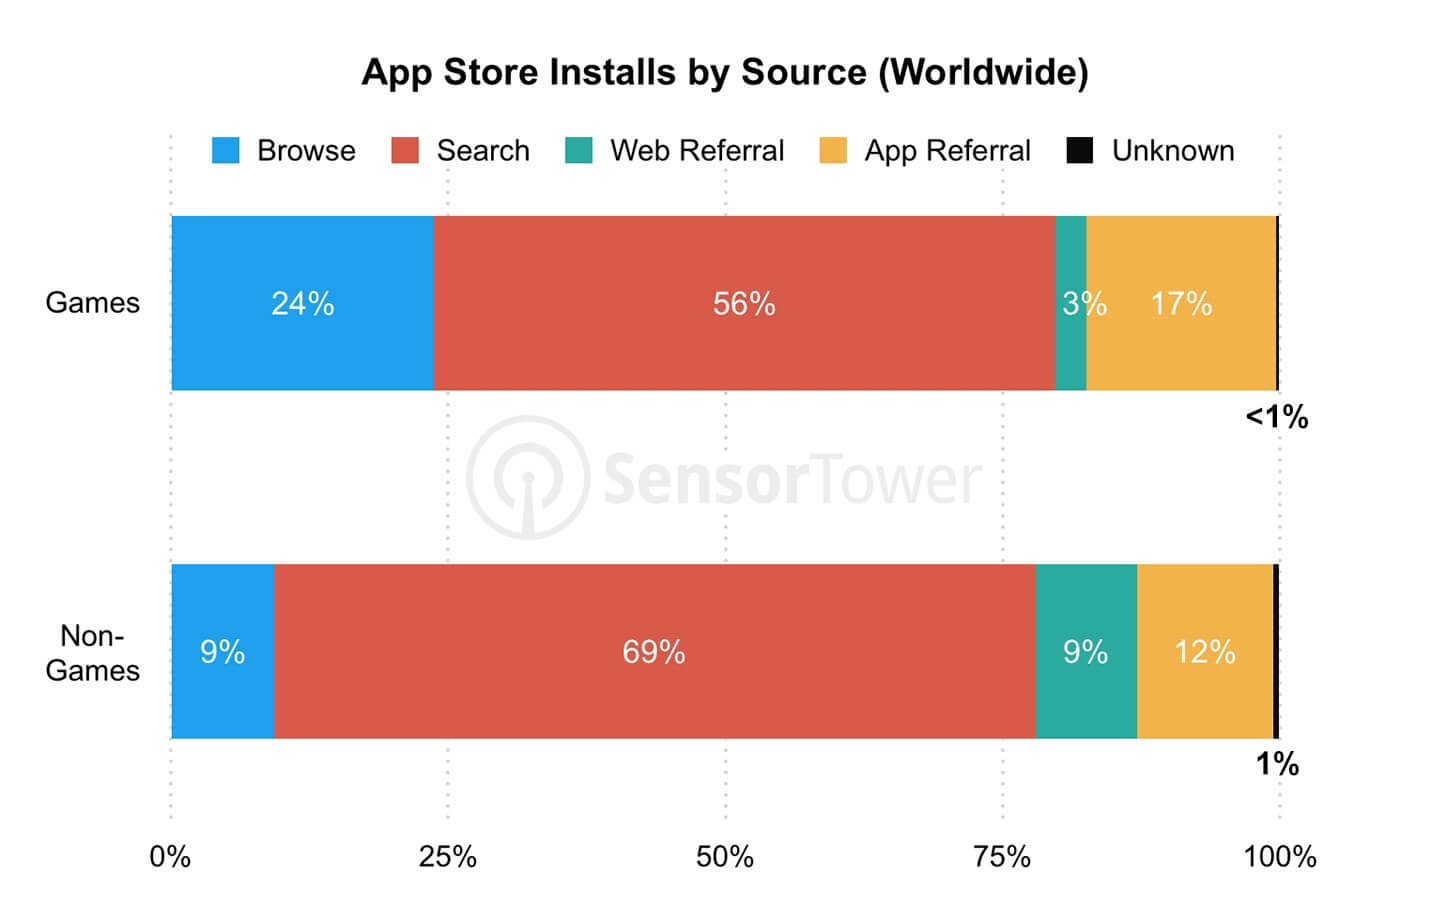 App Store Installs by Source